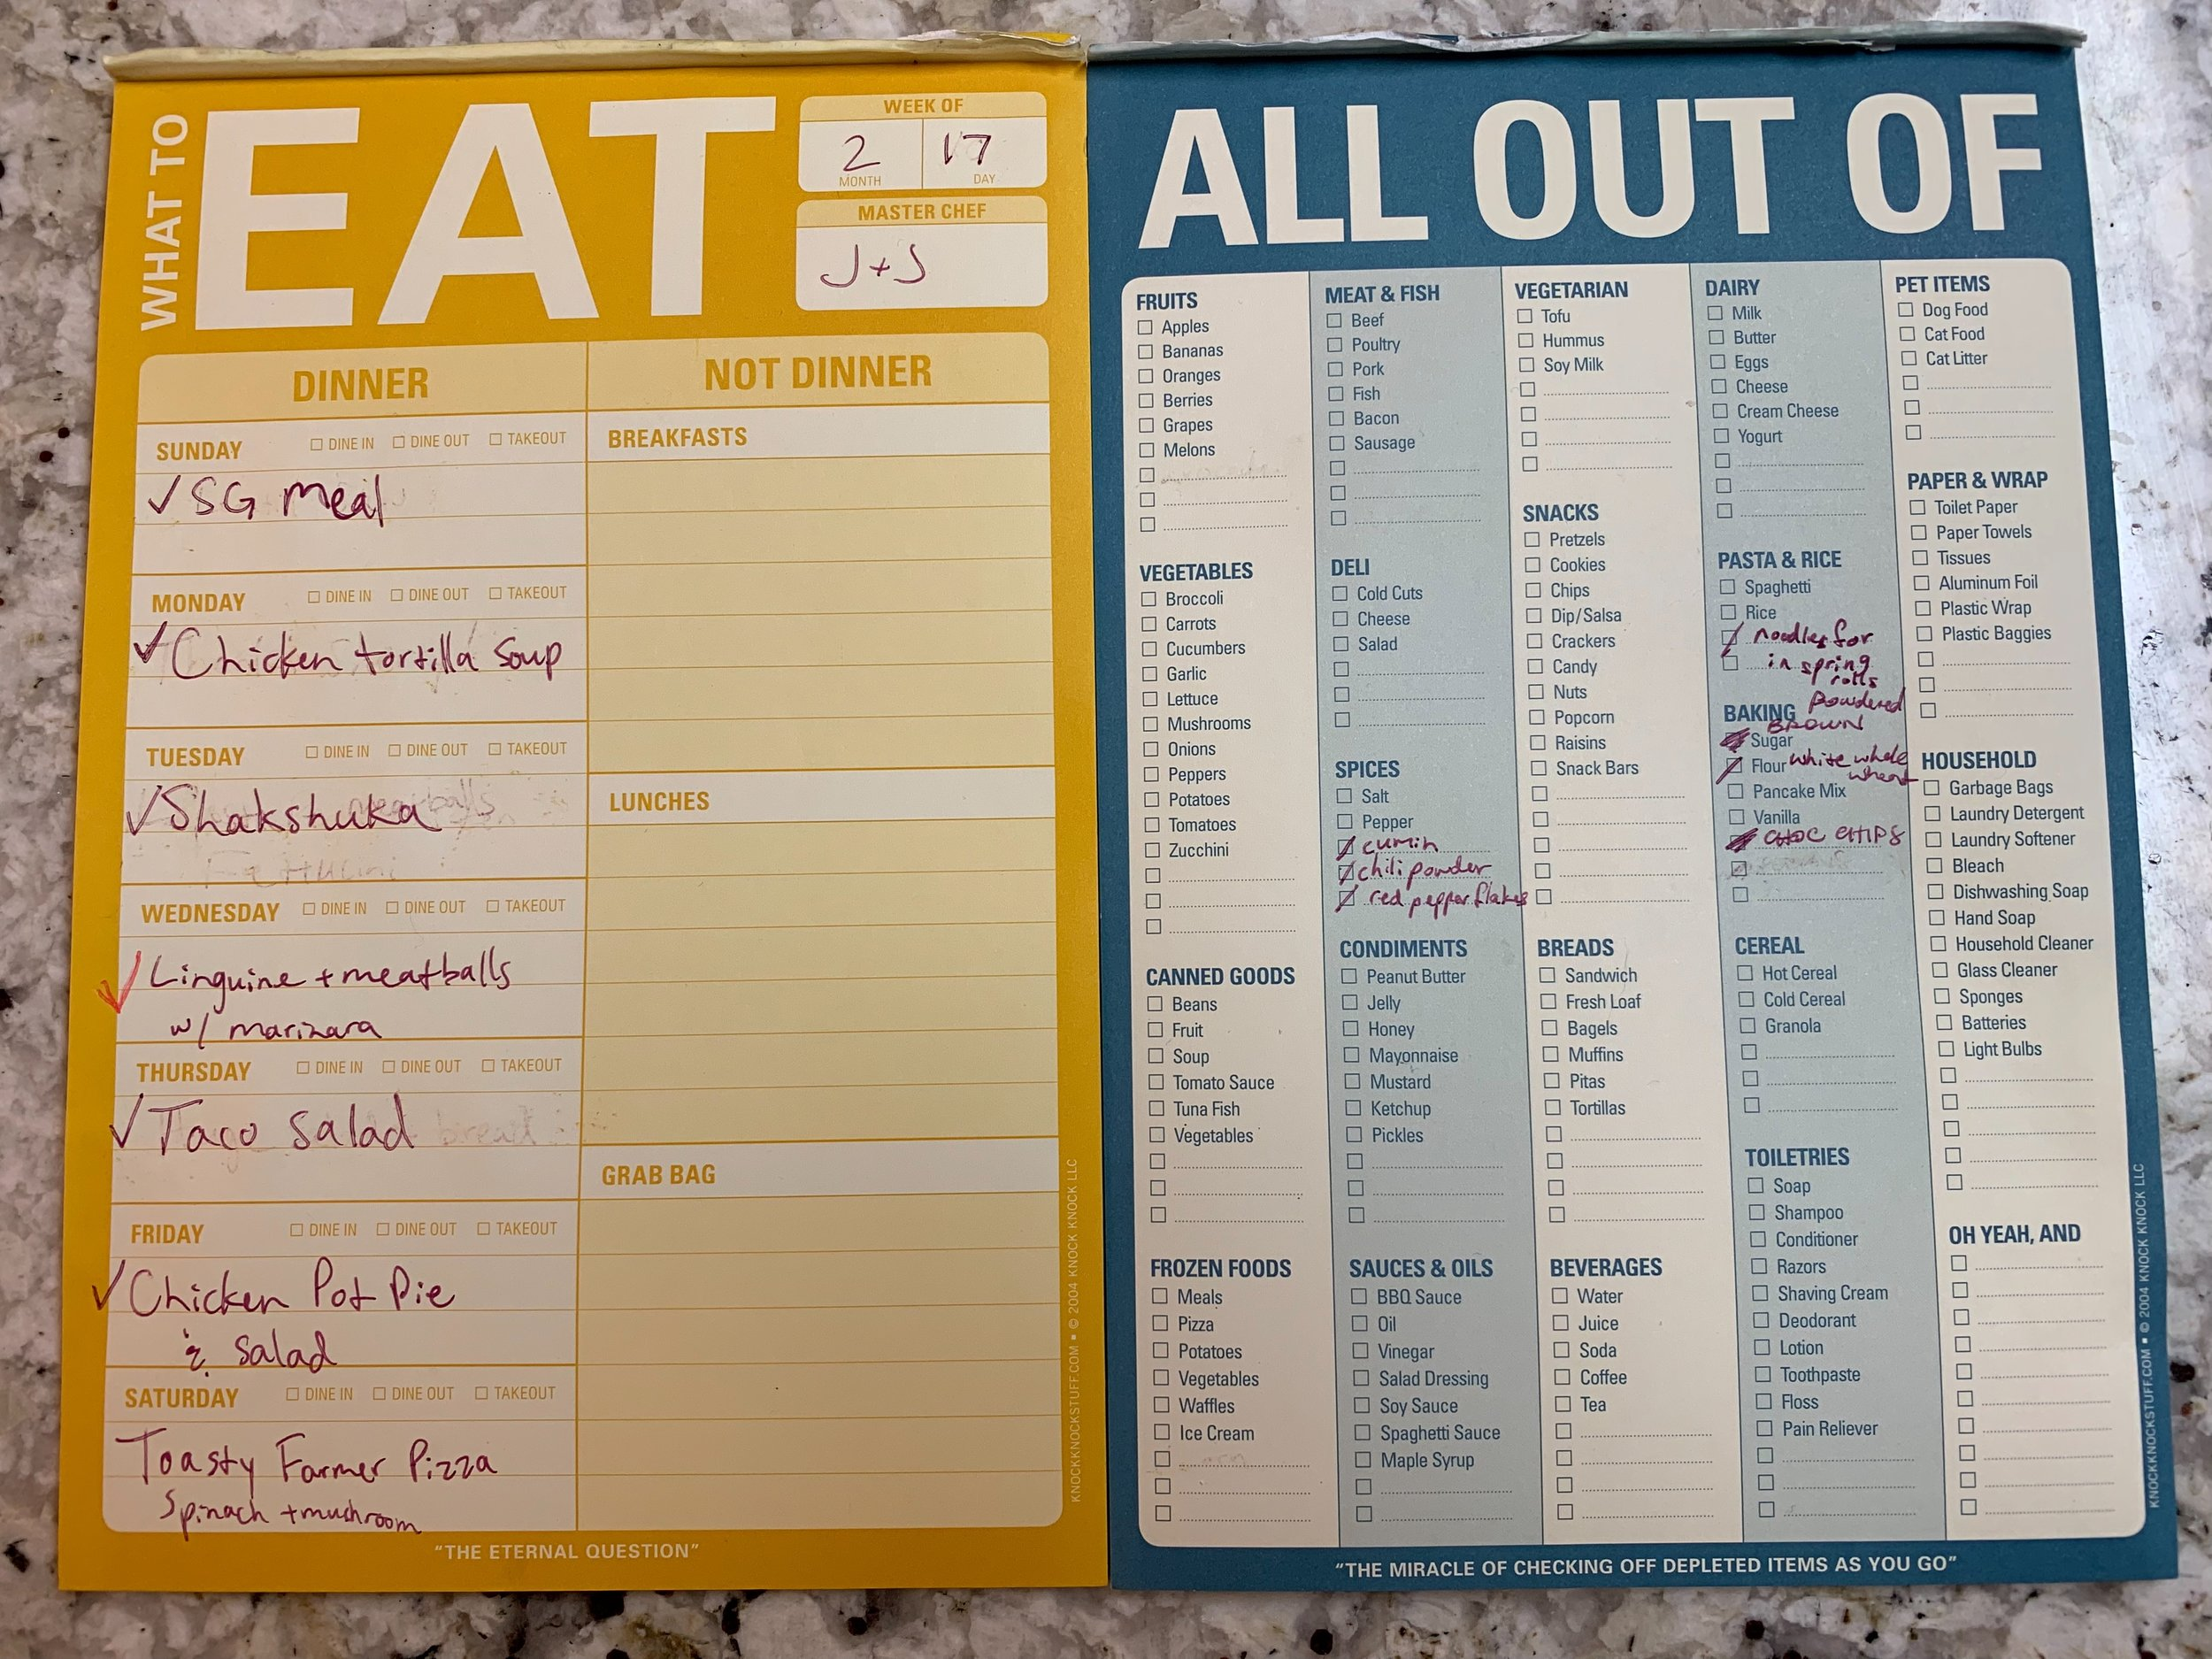 My What To Eat and All Out Of pads from last week